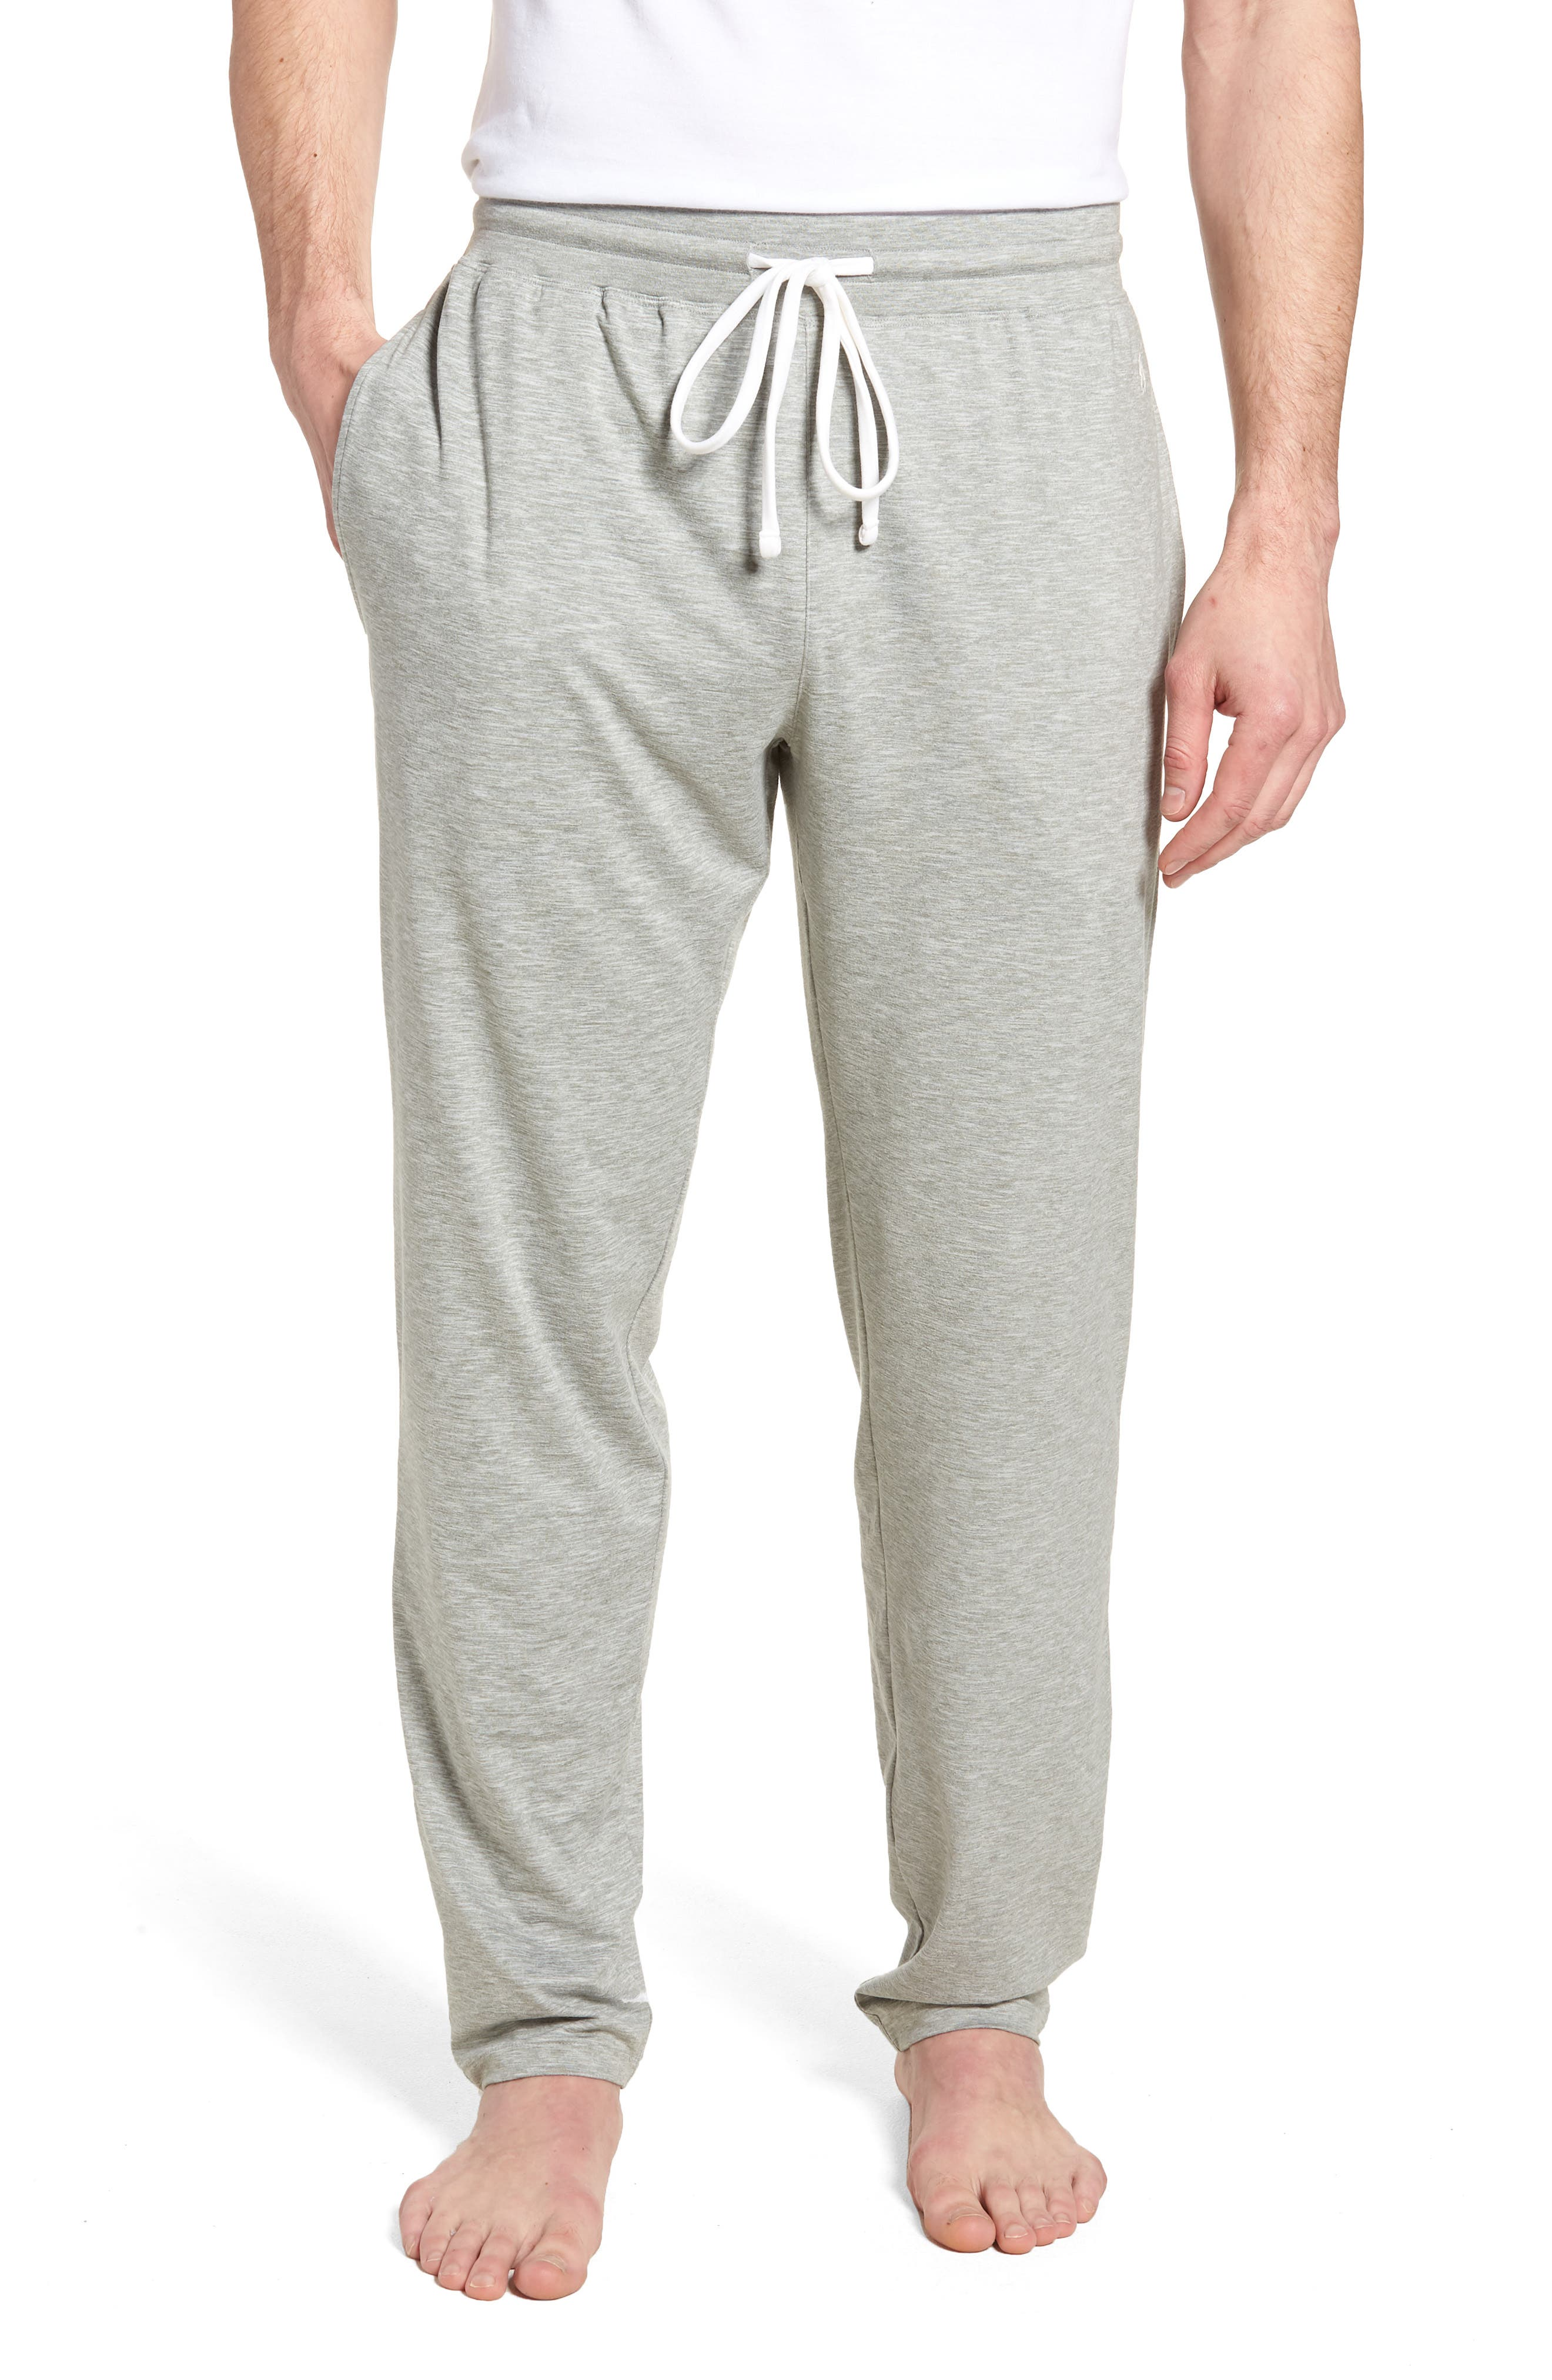 POLO RALPH LAUREN,                             Therma Lounge Pants,                             Main thumbnail 1, color,                             033